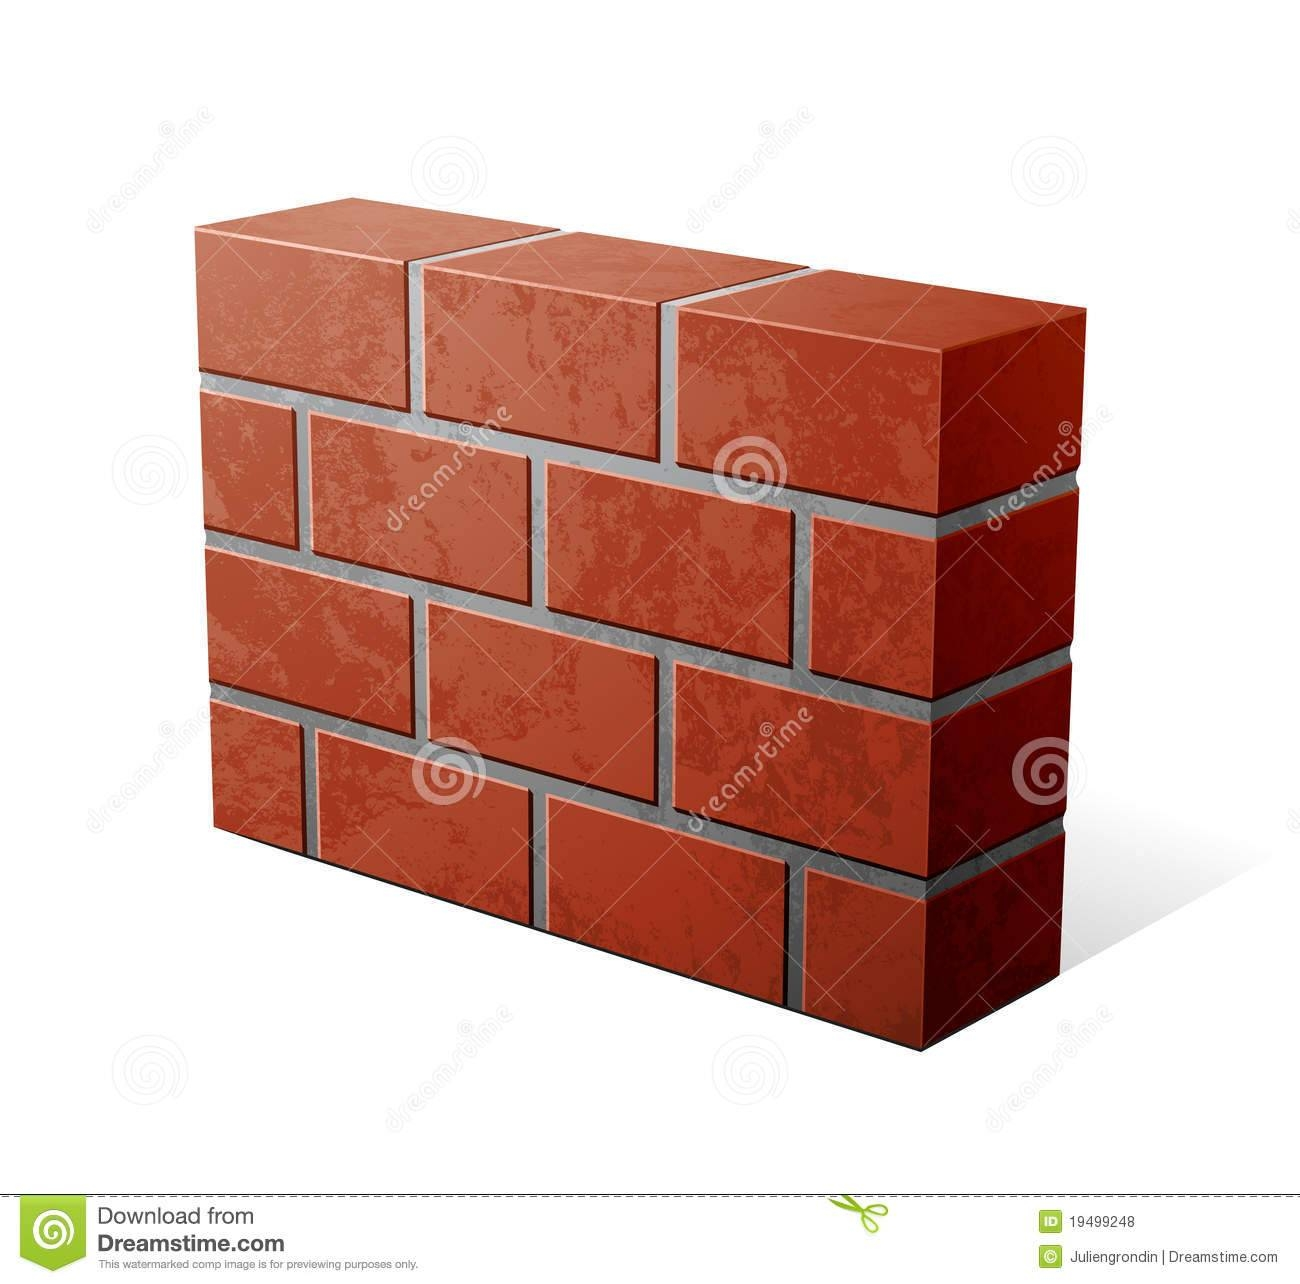 3D Clipart Brick Wall – Pencil And In Color 3D Clipart Brick Wall Regarding Most Up To Date 3D Brick Wall Art (View 4 of 20)